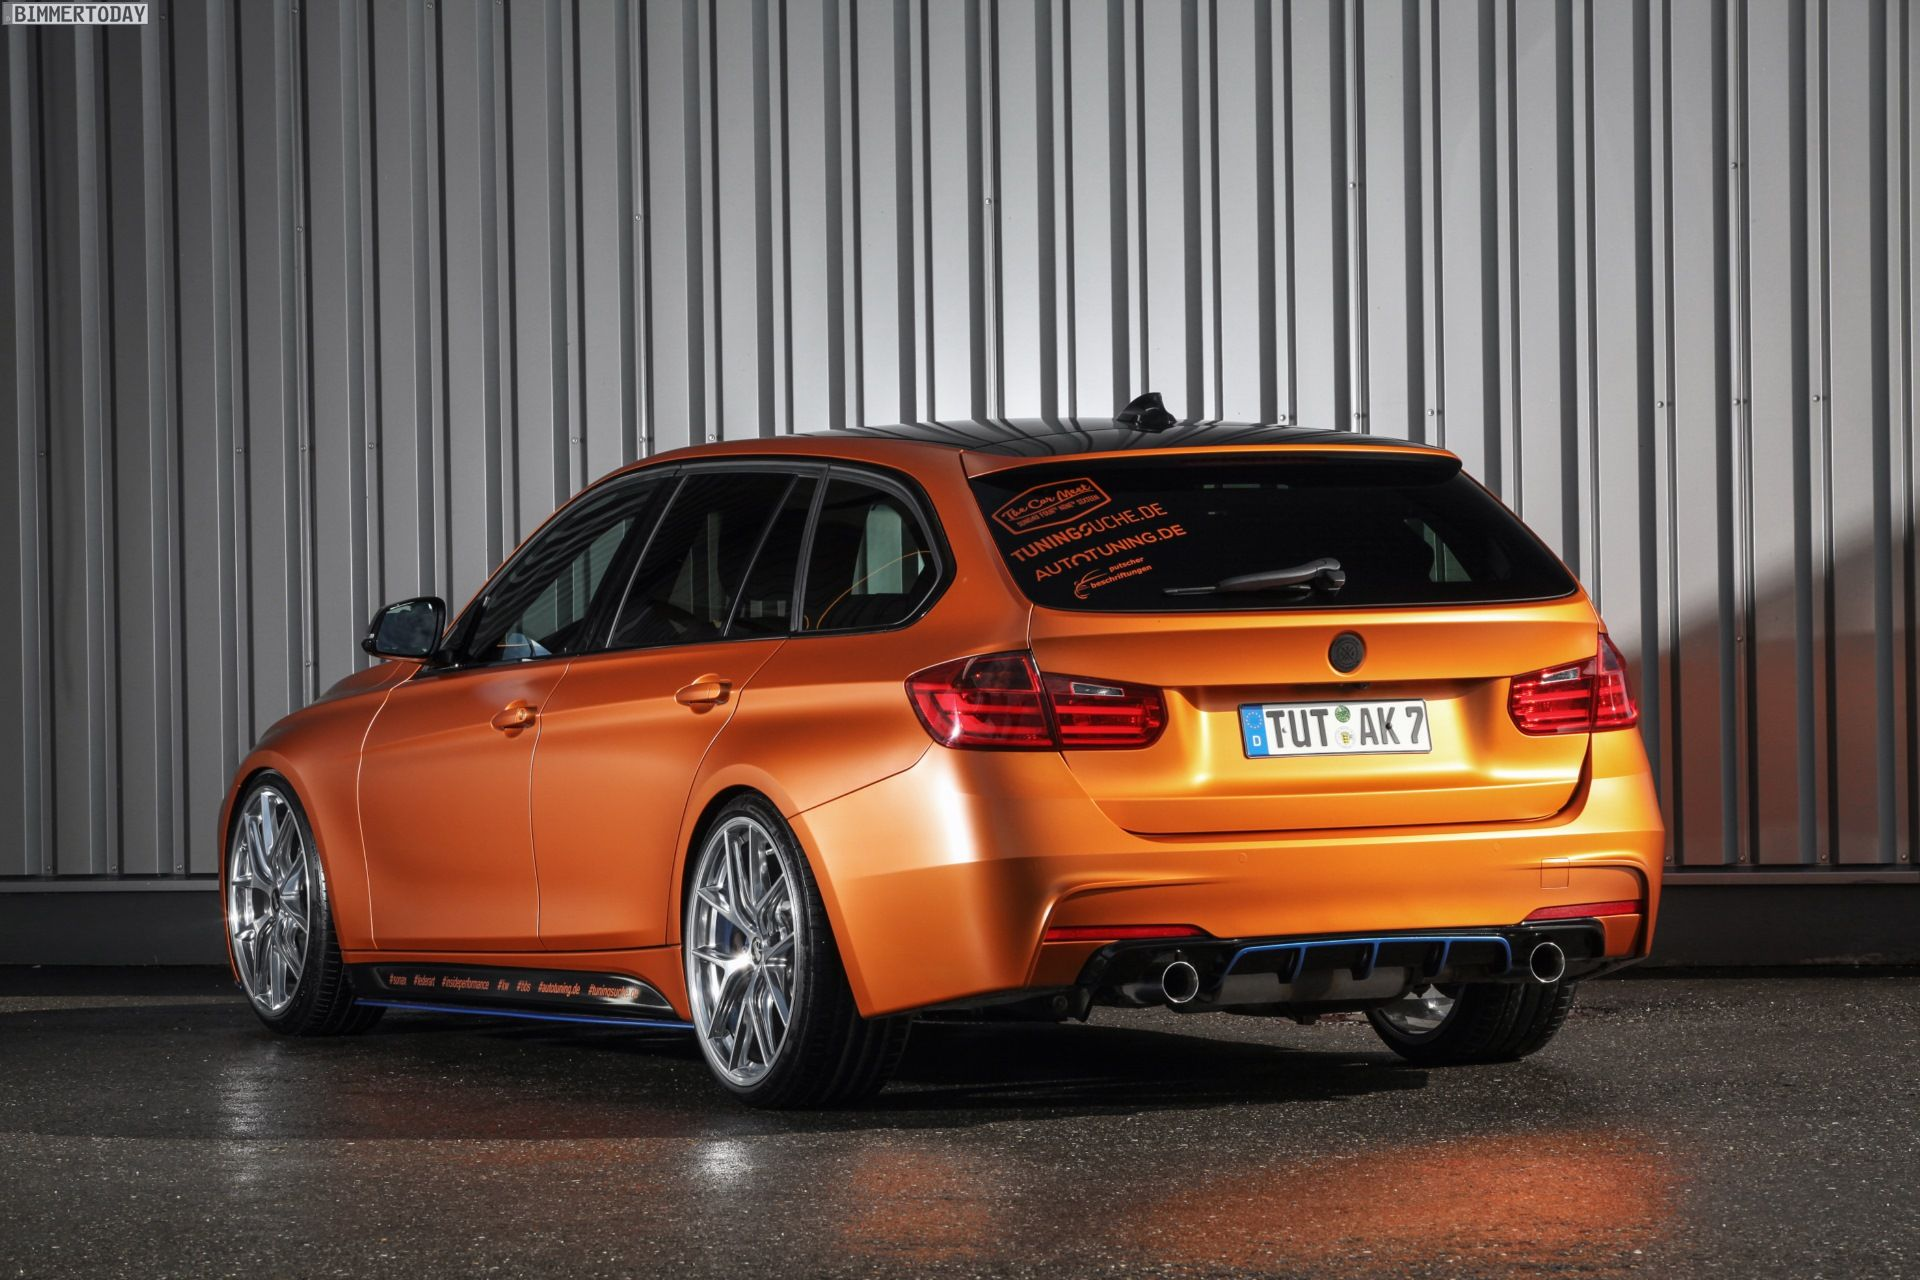 F11 alpina b5 biturbo touring page 2 5series net forums - You Might Agree That Bmw Touring Is An Exciting Rear Wheel Driven Estate Car This Is What Happened When Tuningsuche Put Their Hand